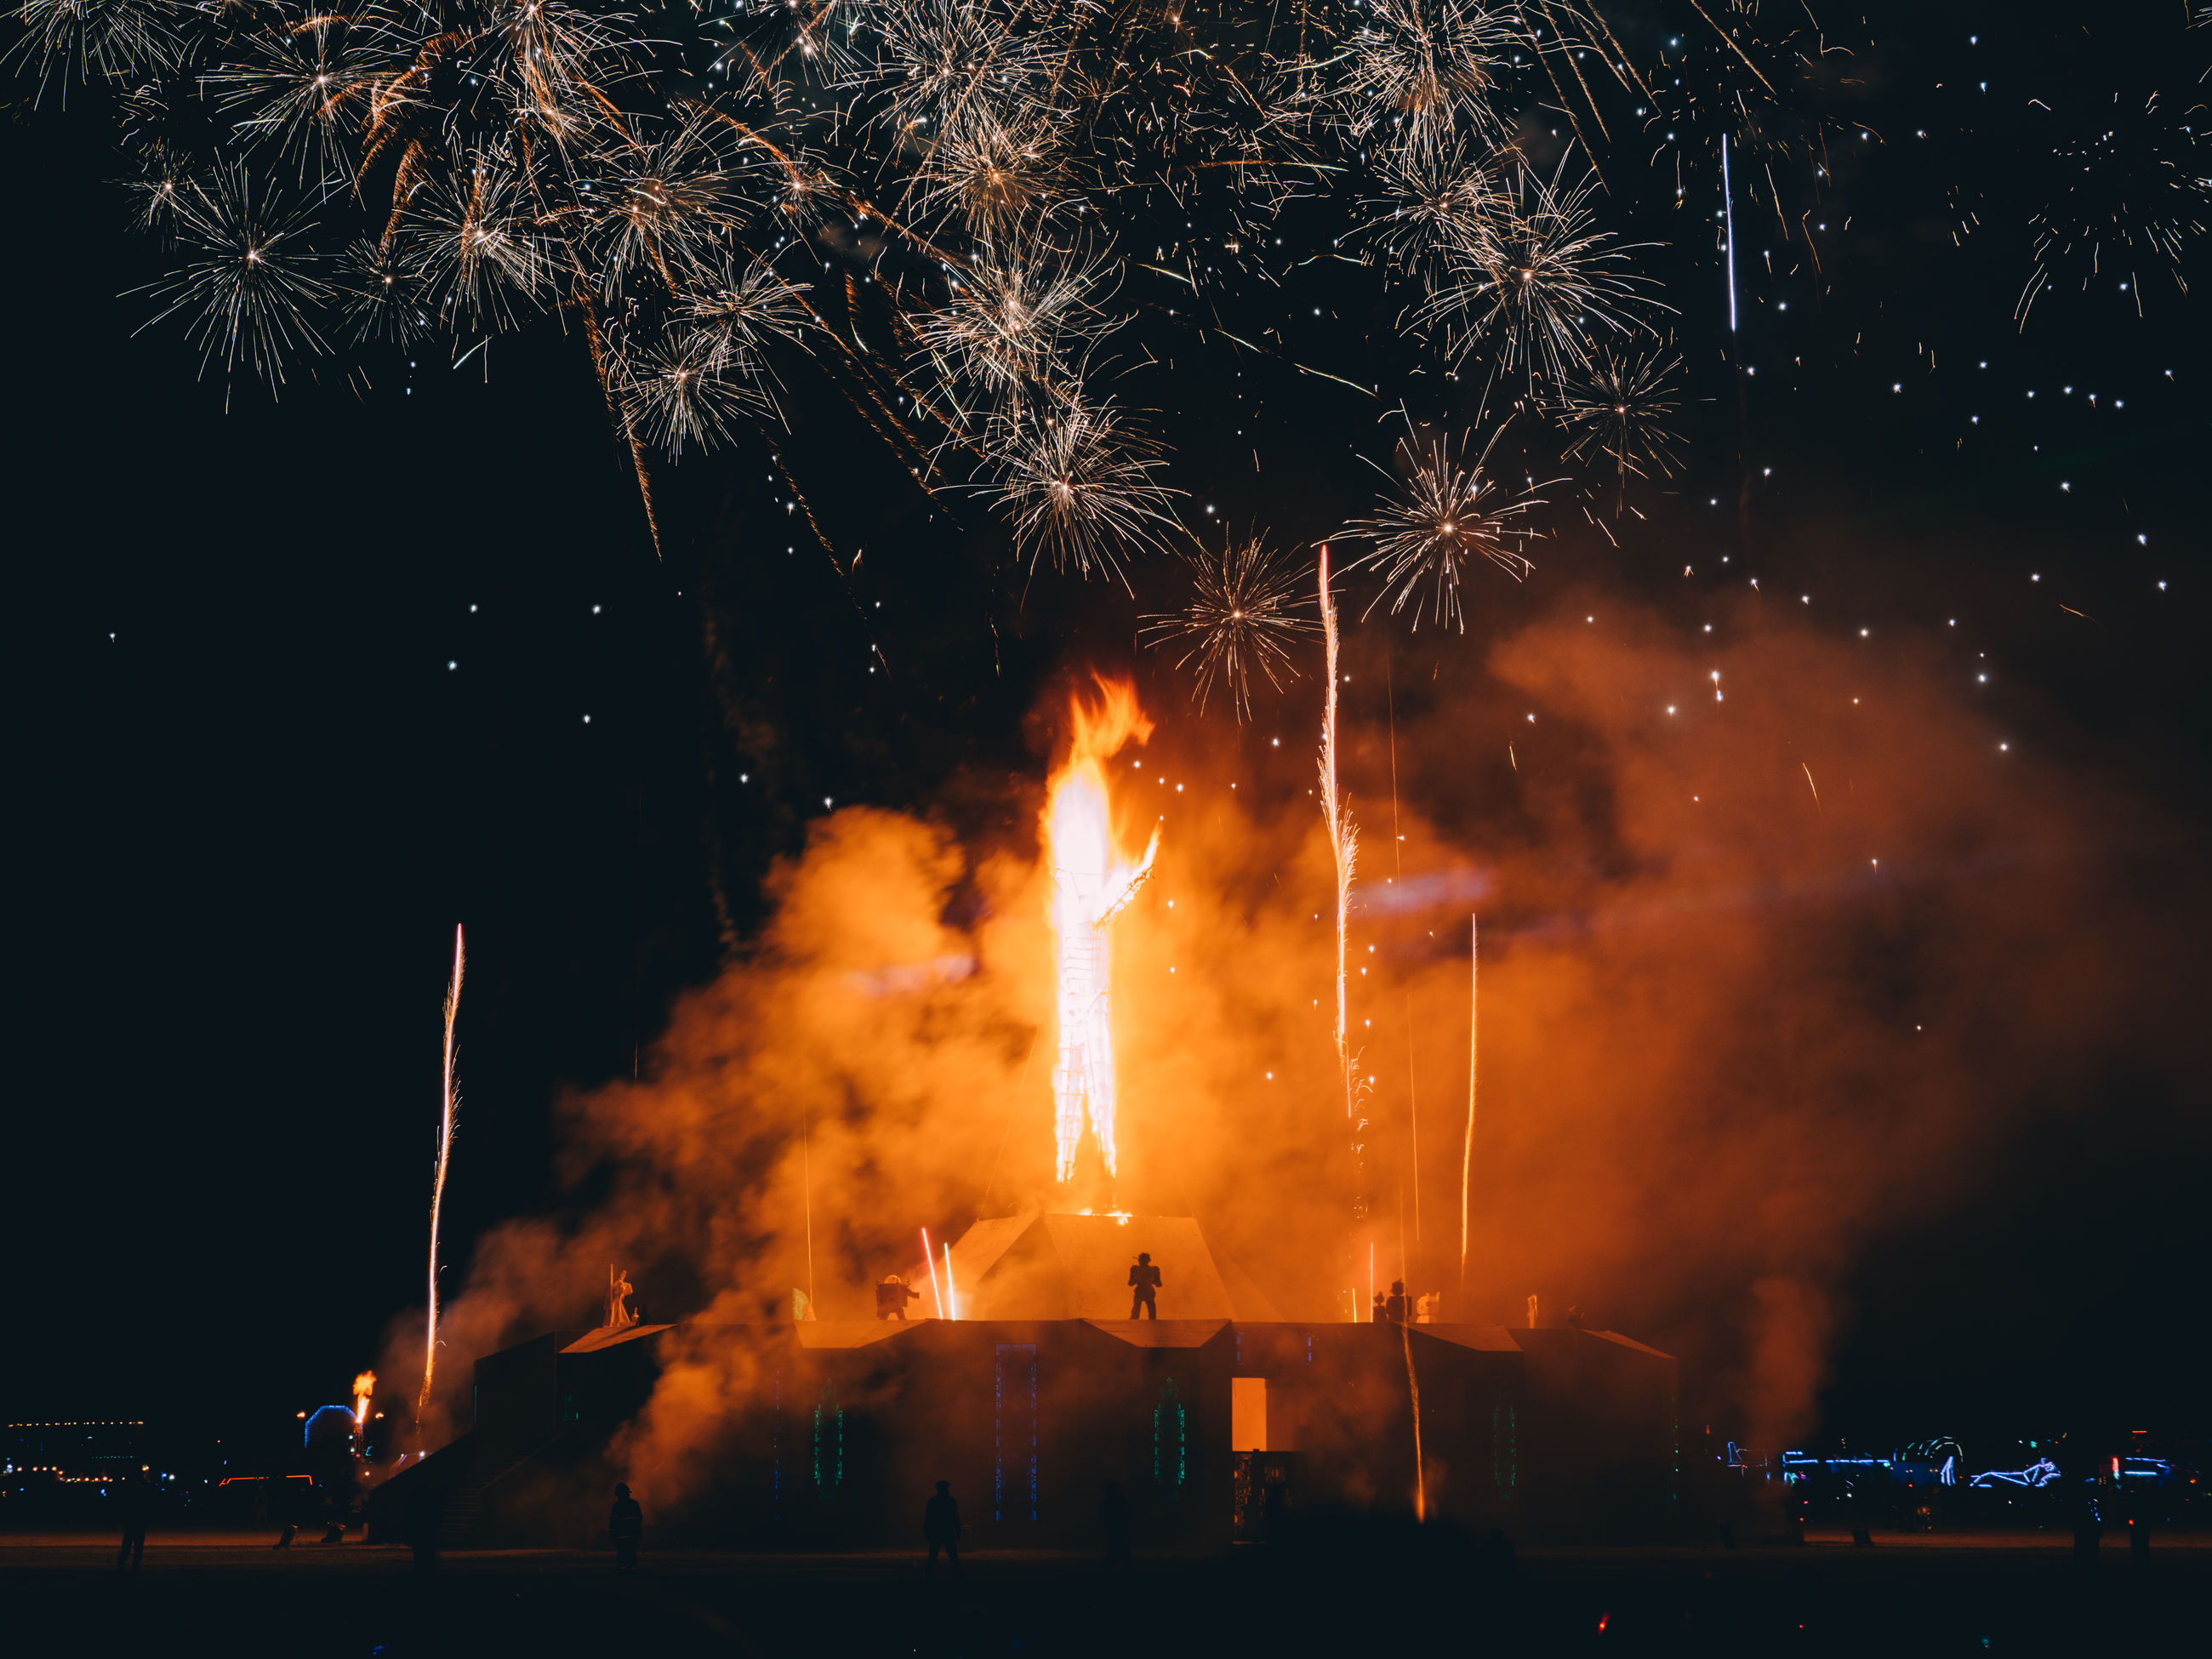 night, burning, fire, illuminated, fire - natural phenomenon, smoke - physical structure, motion, heat - temperature, firework display, firework, flame, architecture, event, nature, building exterior, long exposure, glowing, no people, exploding, built structure, outdoors, firework - man made object, pollution